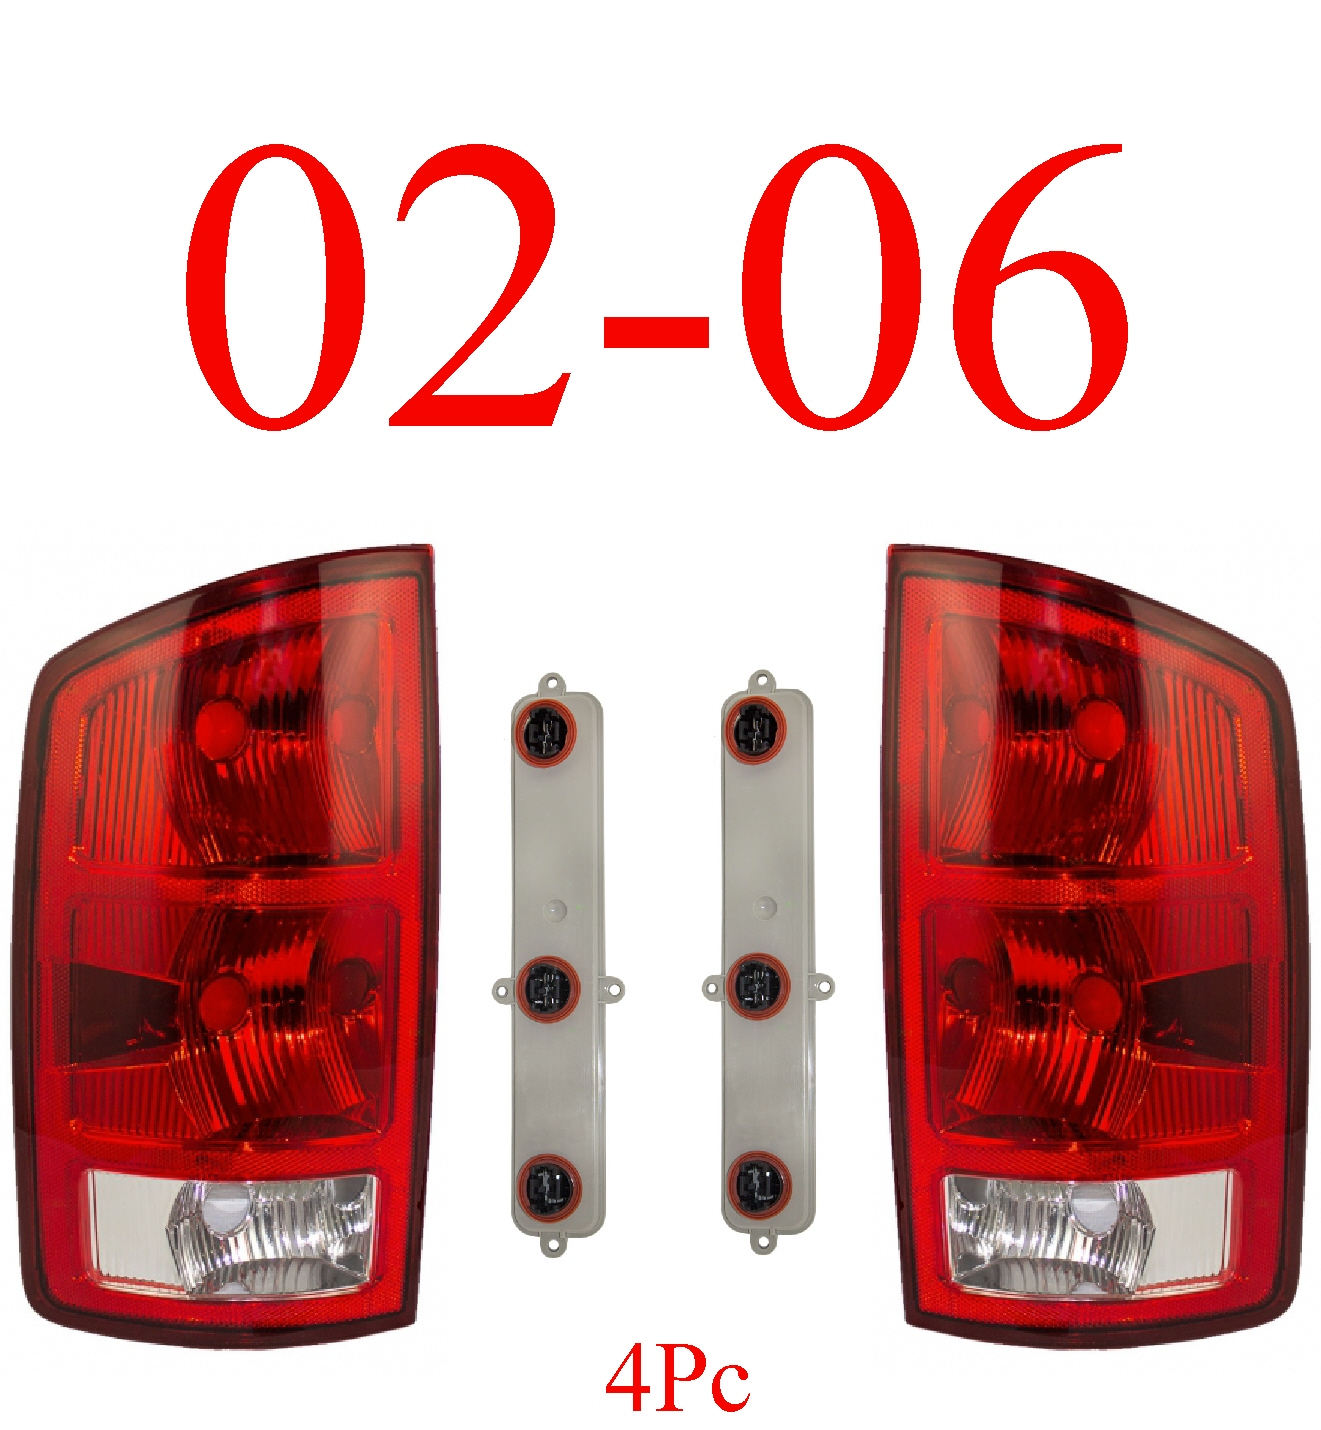 02-06 Dodge Tail Light Set, Assembly W/ Connector Plate & Bulbs